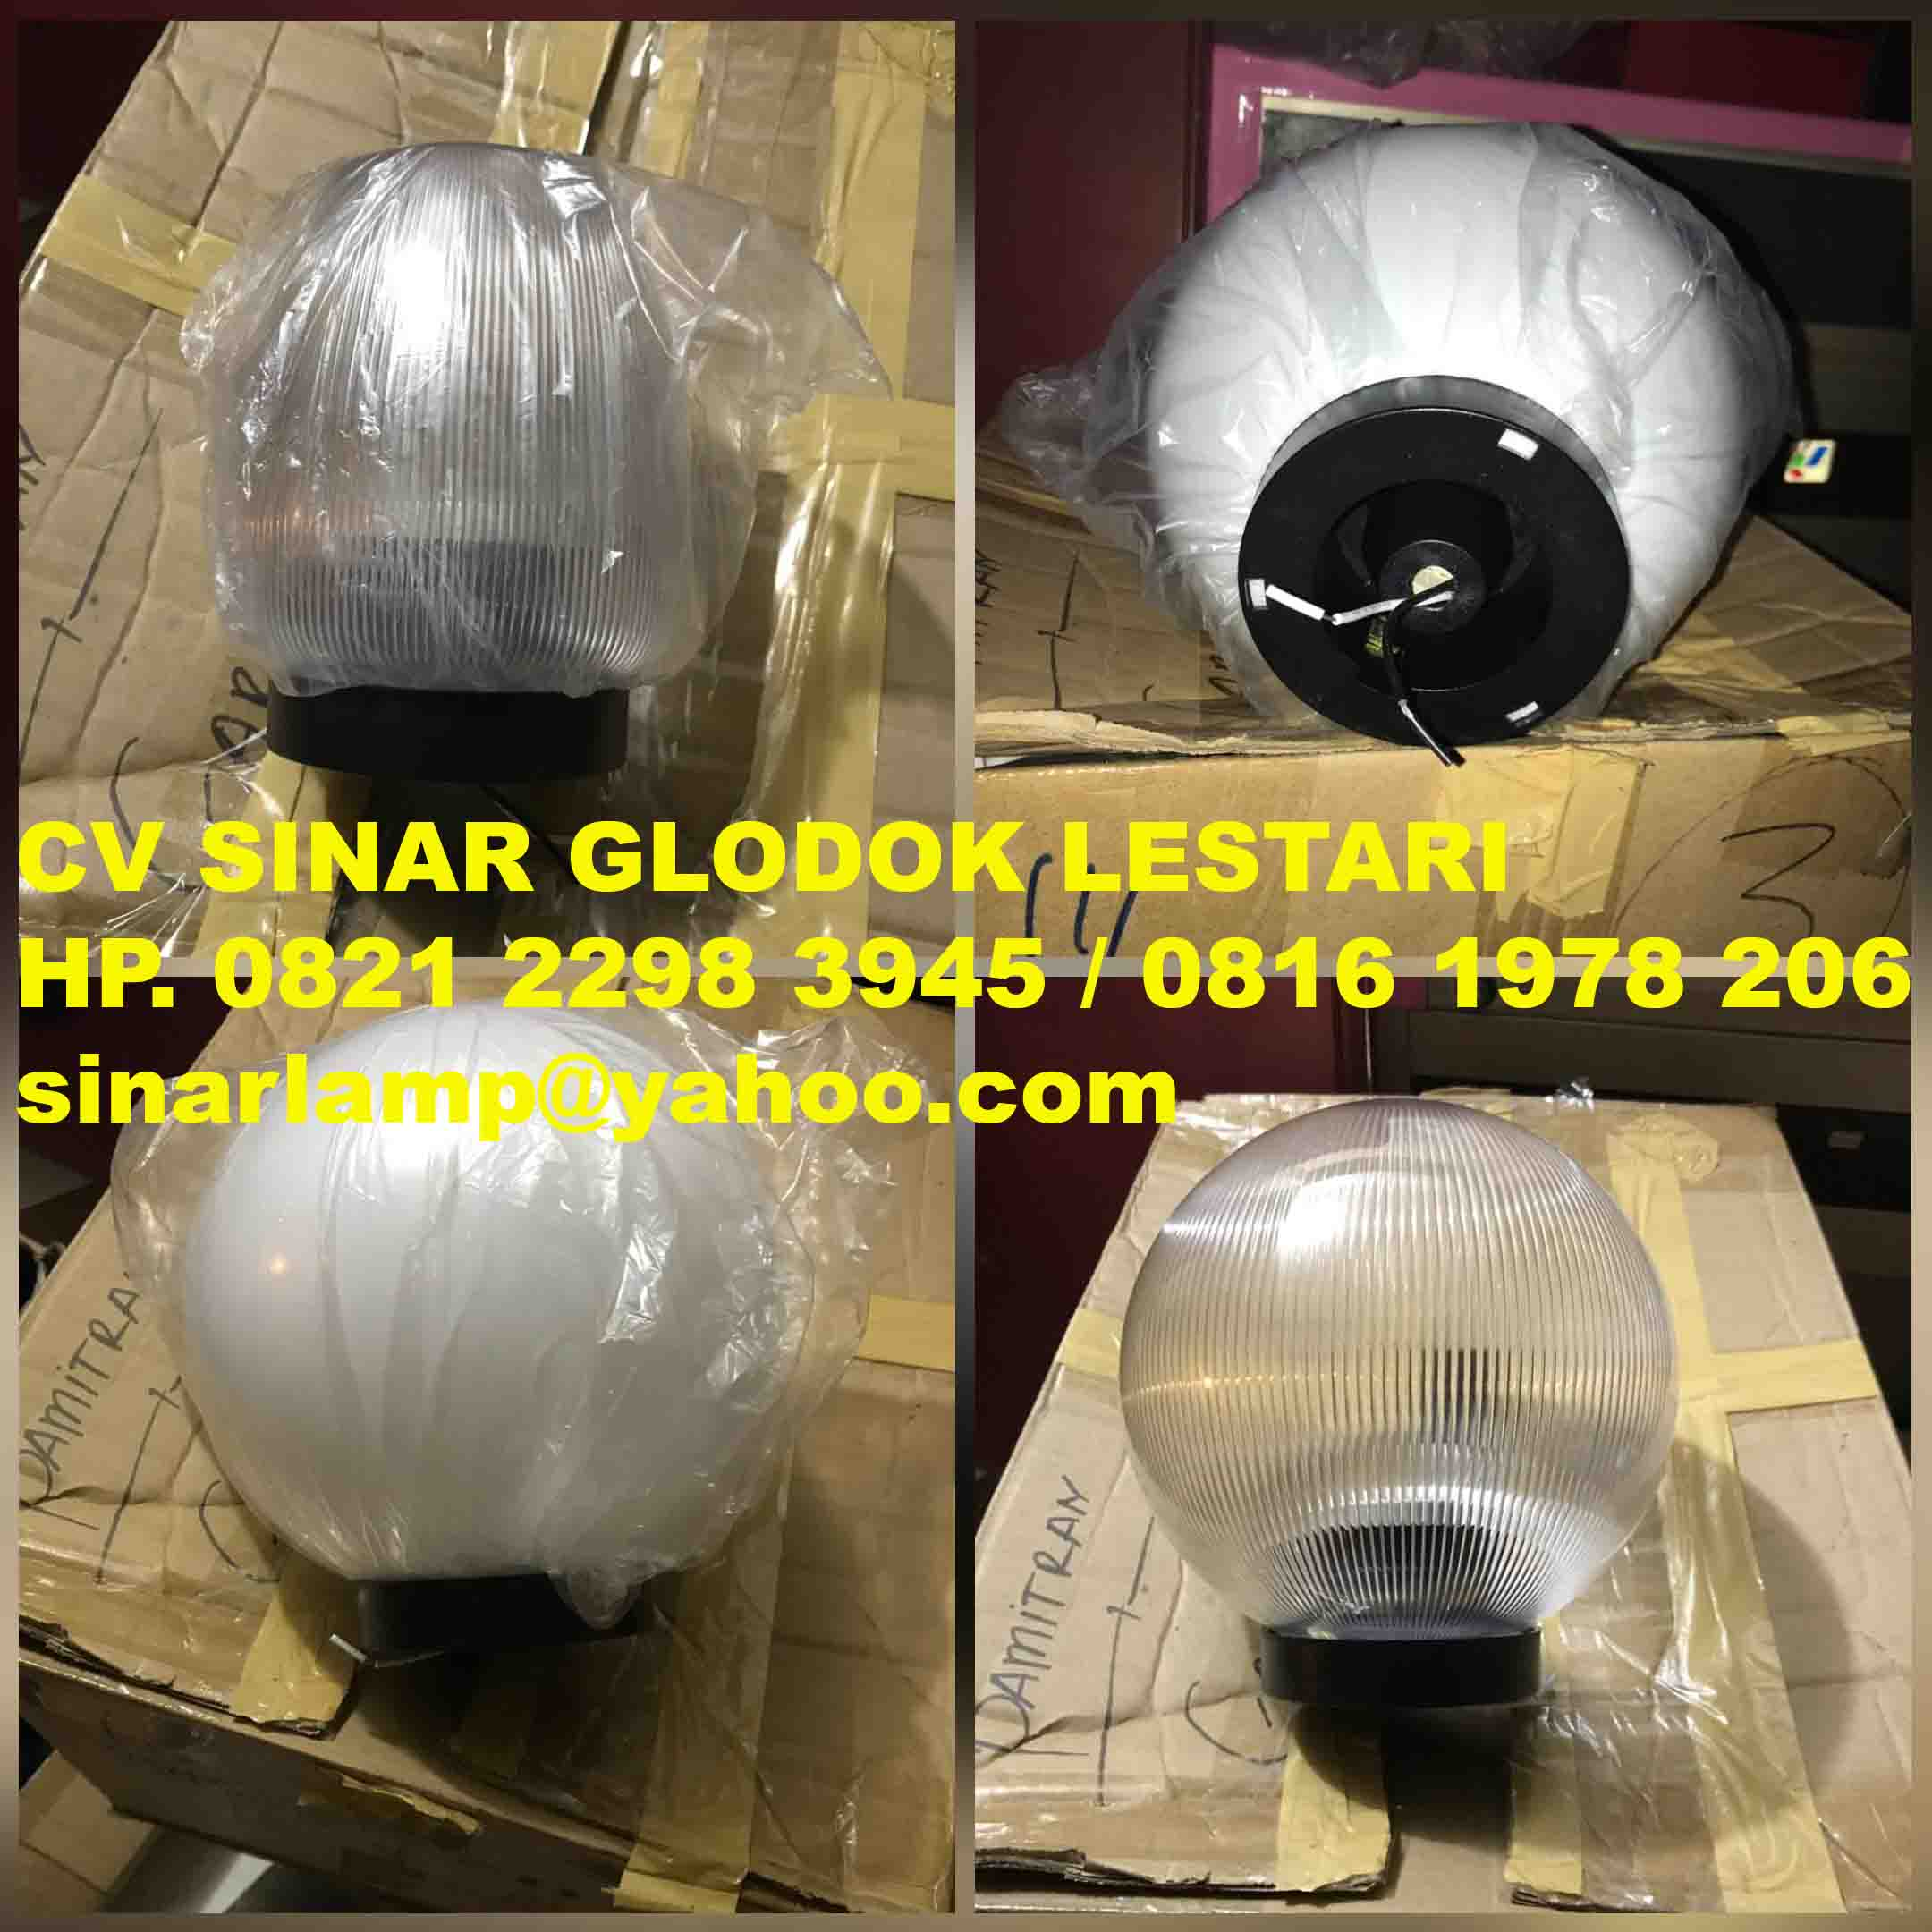 Lampu Taman Dan Lampu Pilar 404 The Requested Product Does Not Exist